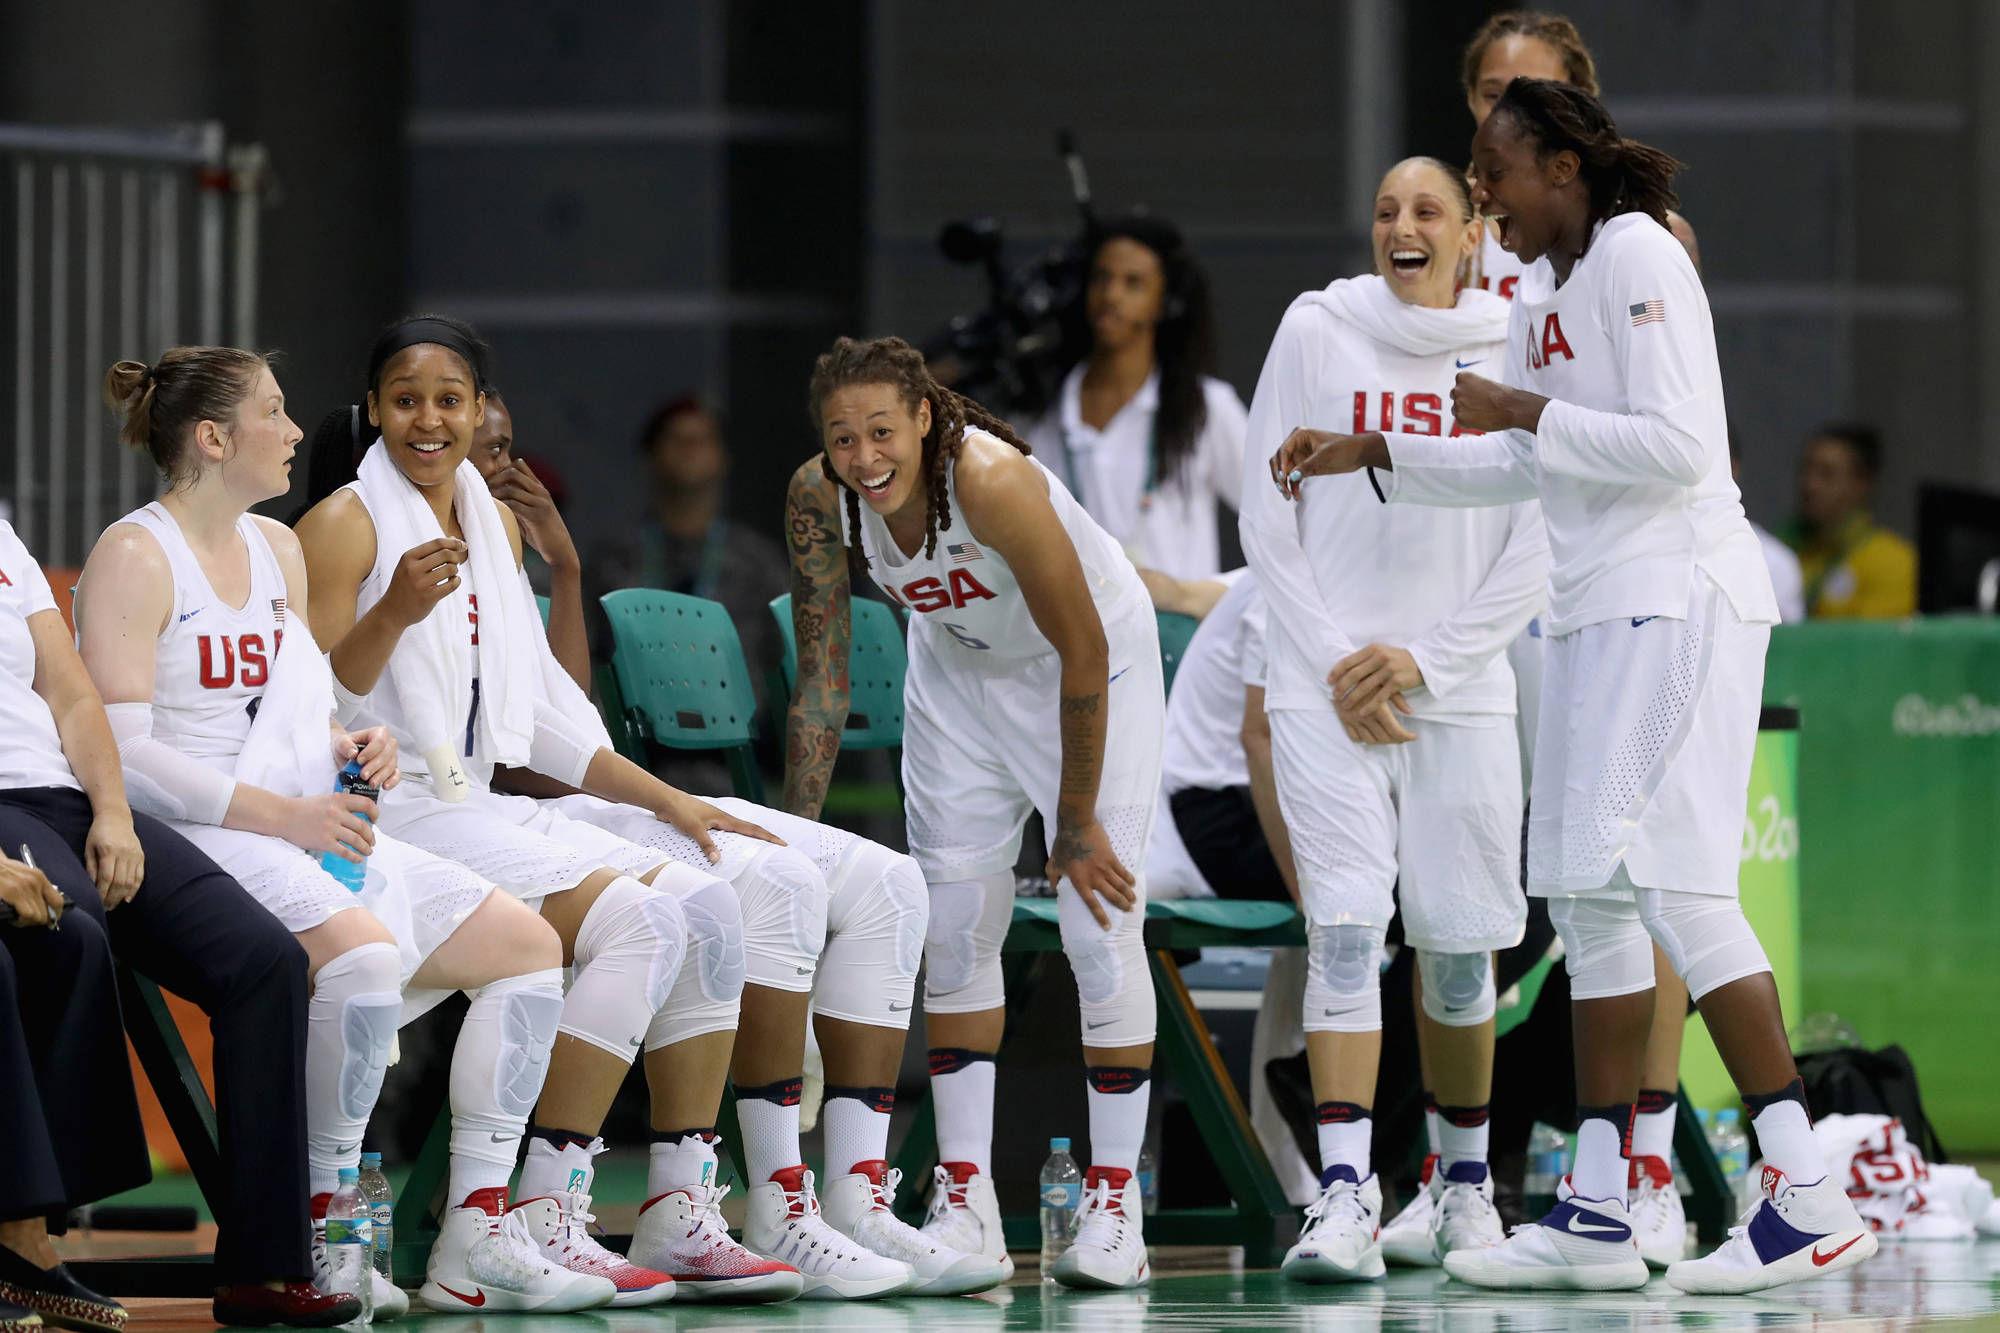 The United States bench laughs during the closing moments of their 110-84 win over Serbia in the Women's Basketball Preliminary Round Group B match between China and Spain on Day 5 of the Rio 2016 Olympic Games at Youth Arena on August 10, 2016 in Rio de Janeiro, Brazil.